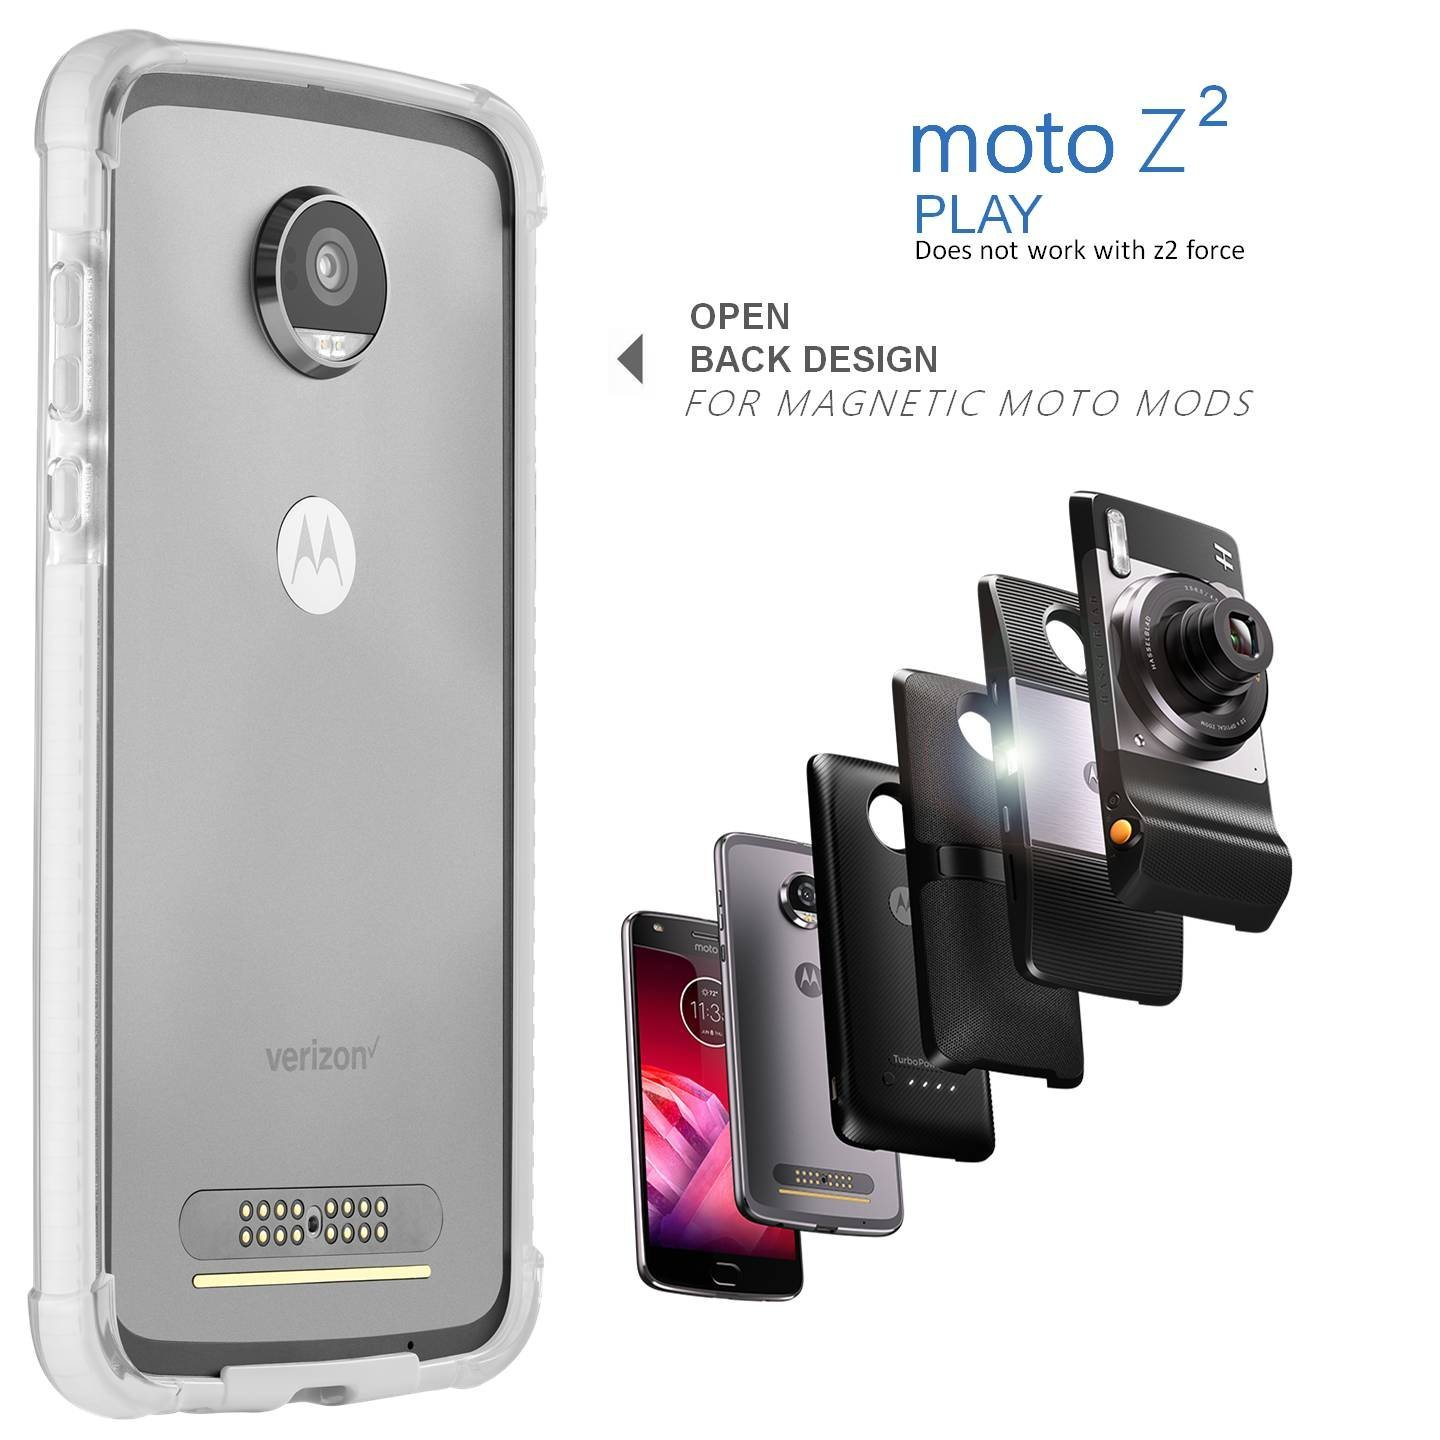 competitive price 58234 d587a Moto Z2 Play Case Bumper - Mod Compatible (Does not Work with Other ...